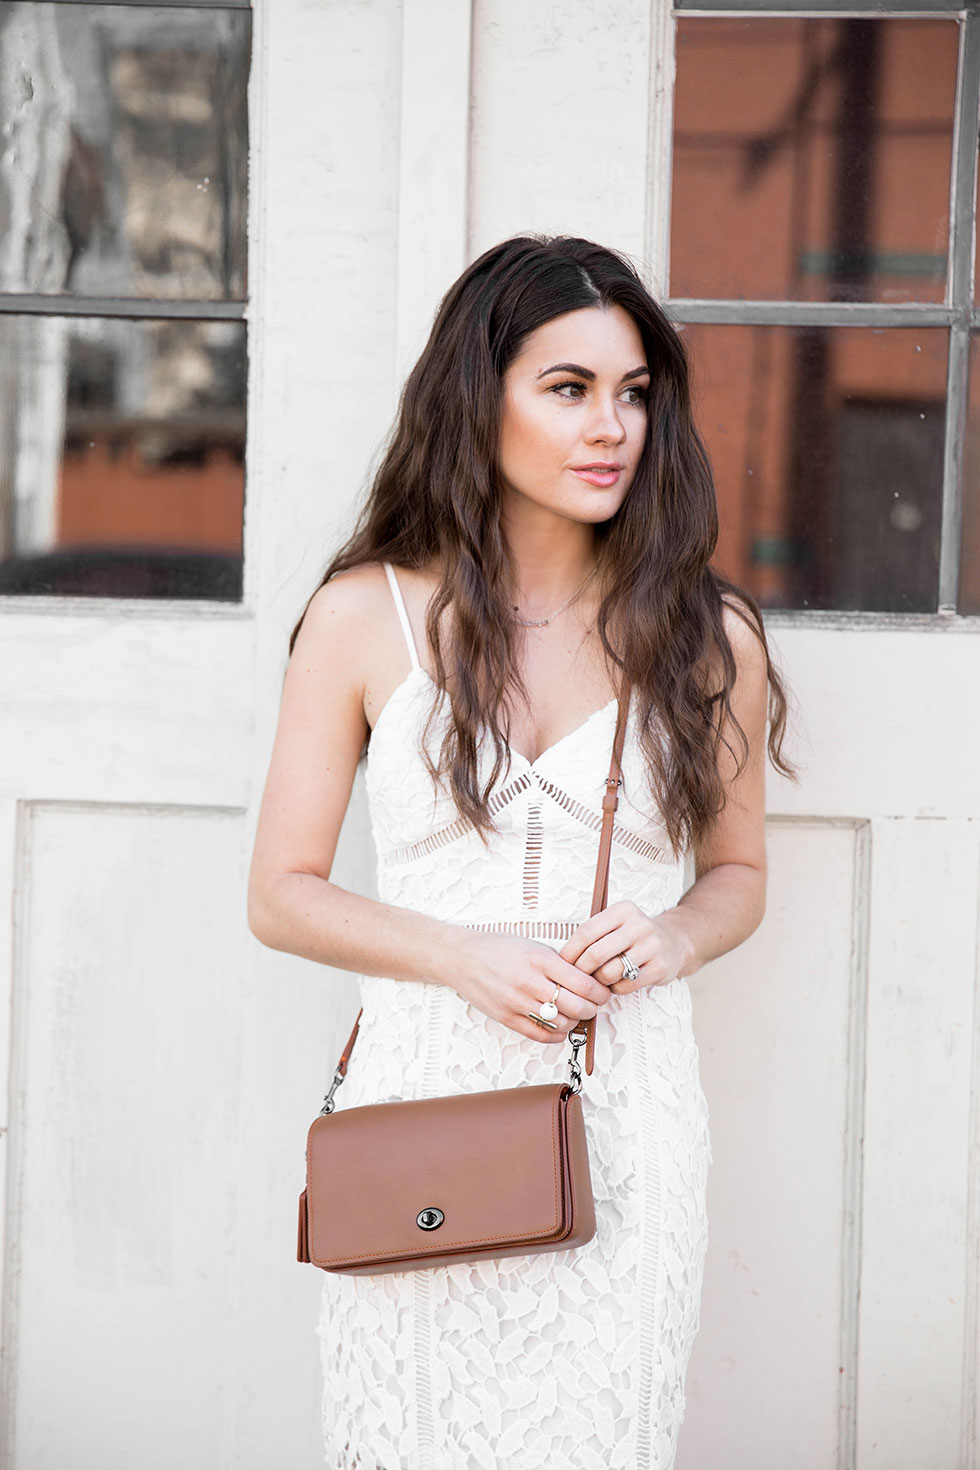 White Lace Midi Dress, Coach Dinky Crossbody in Glovetanned Leather Spring Outfit